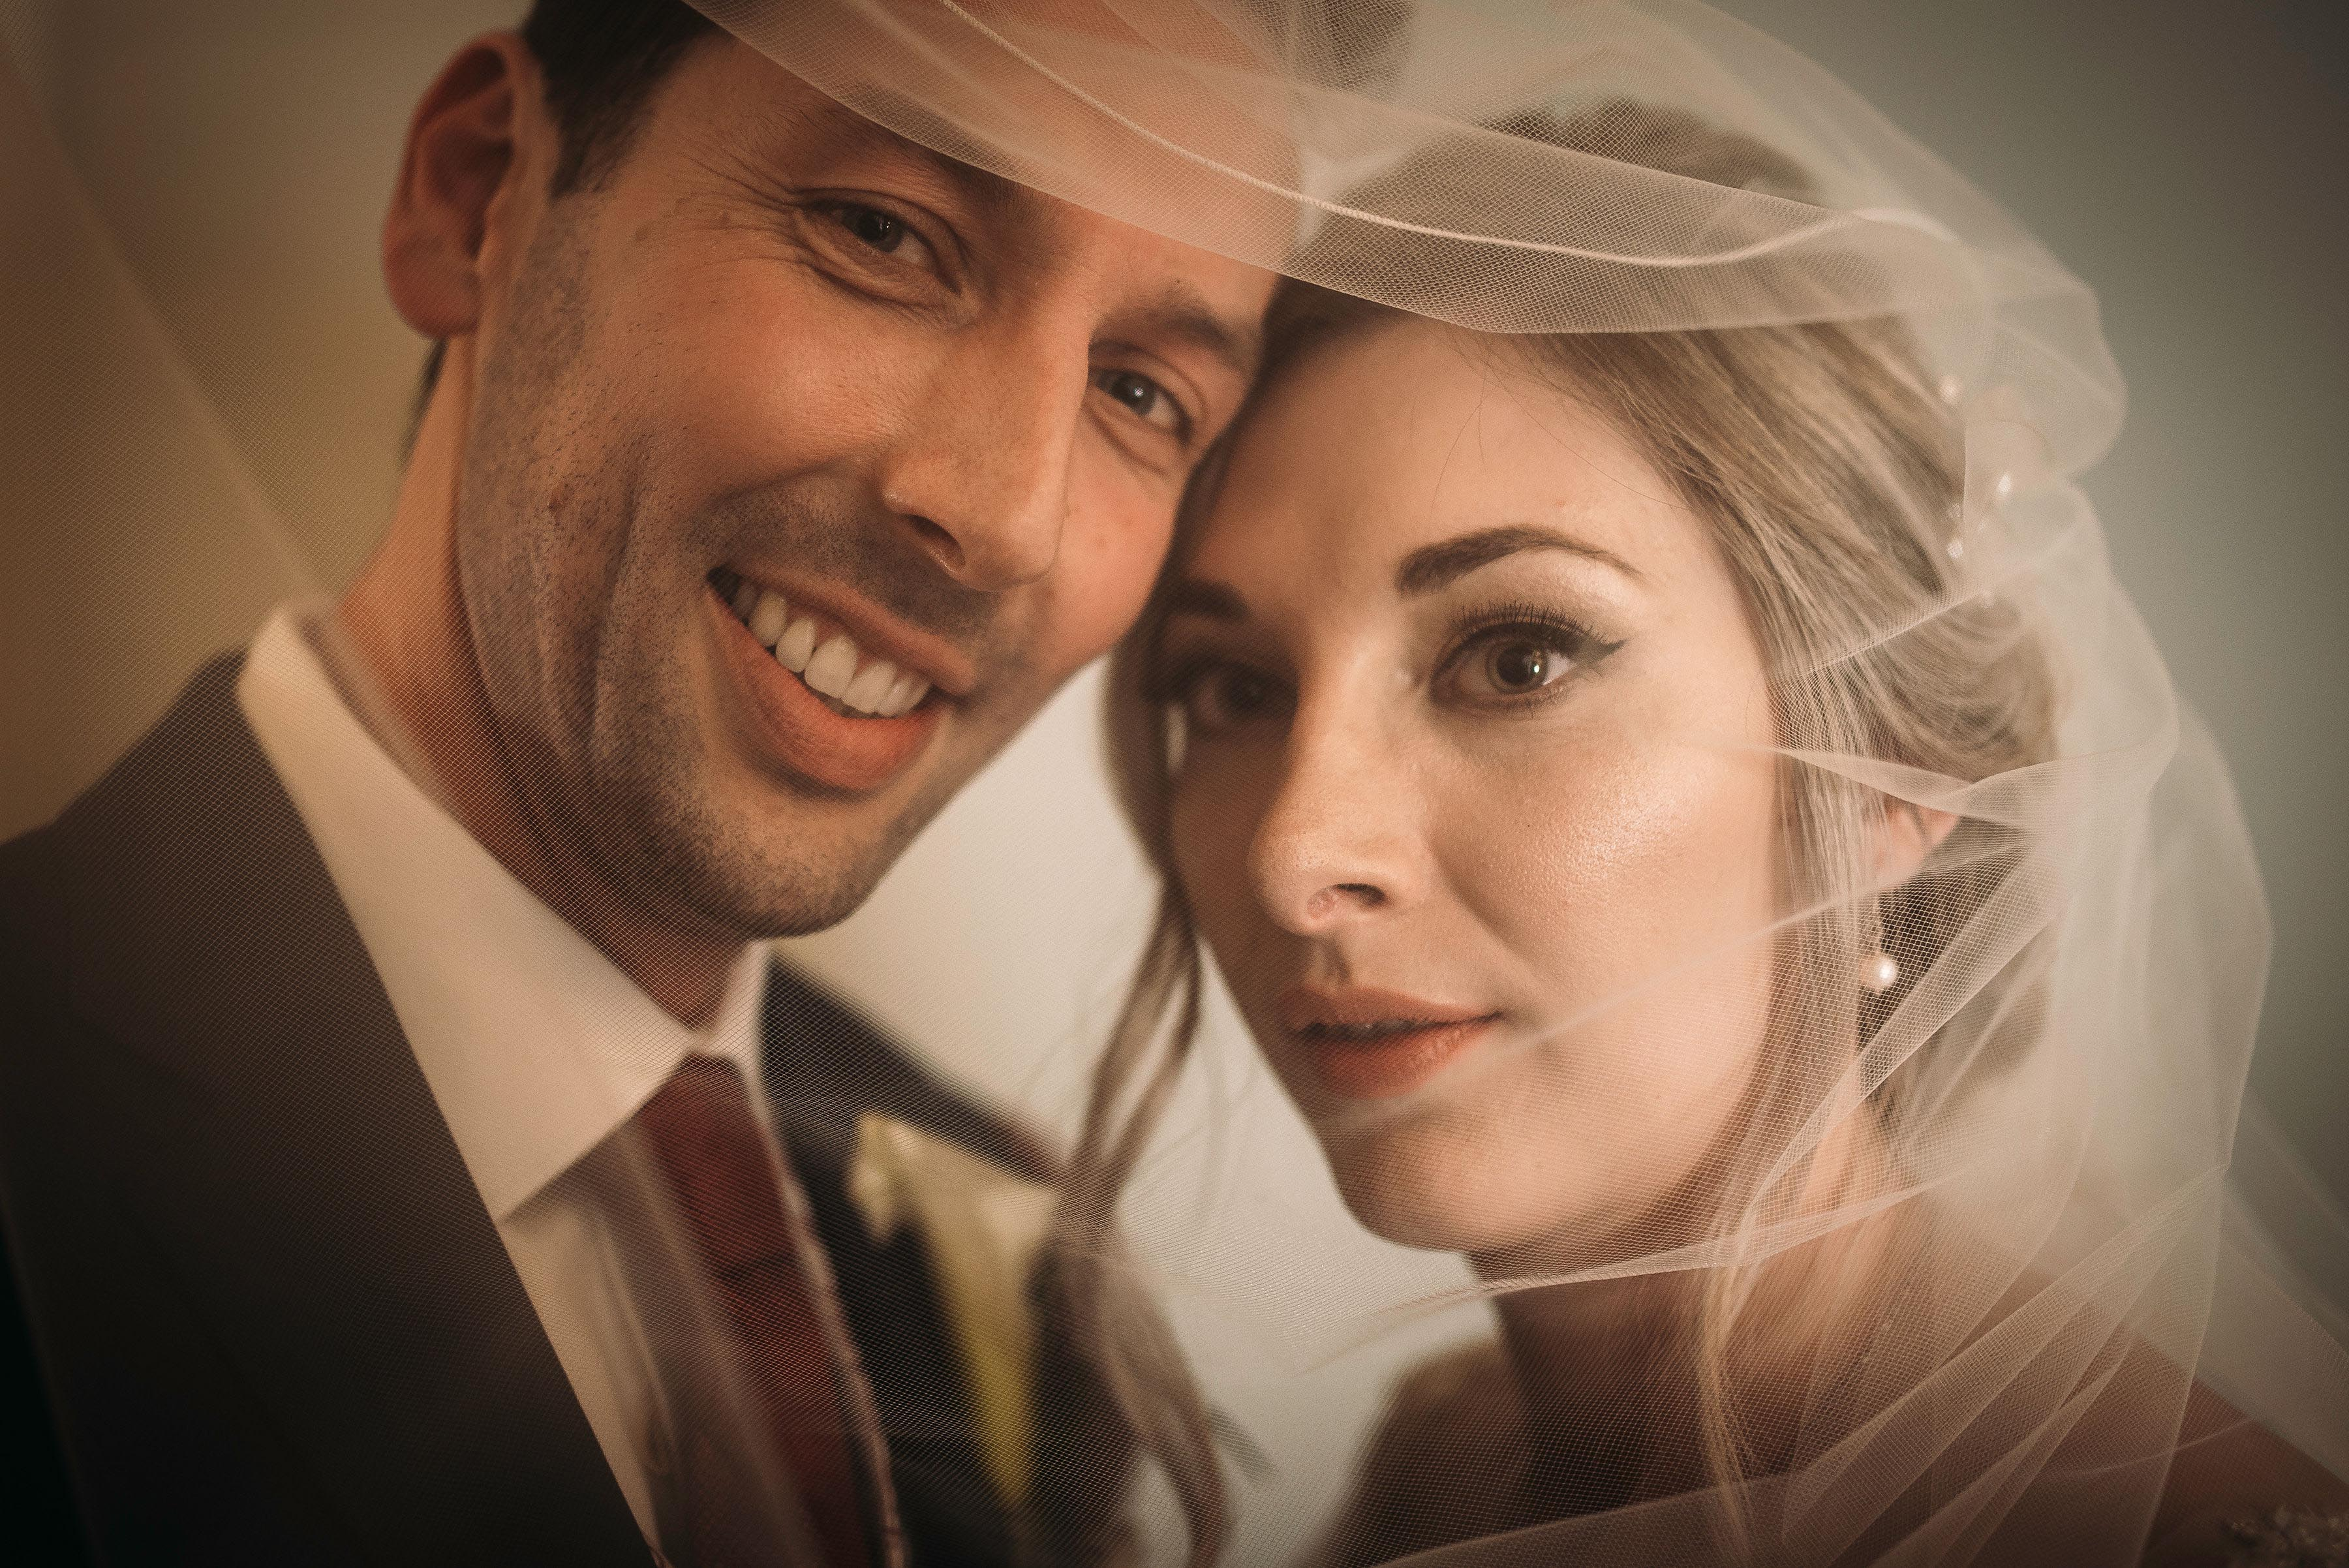 Married At First Sight viewers joke it may be their final dating option and vow to sign up